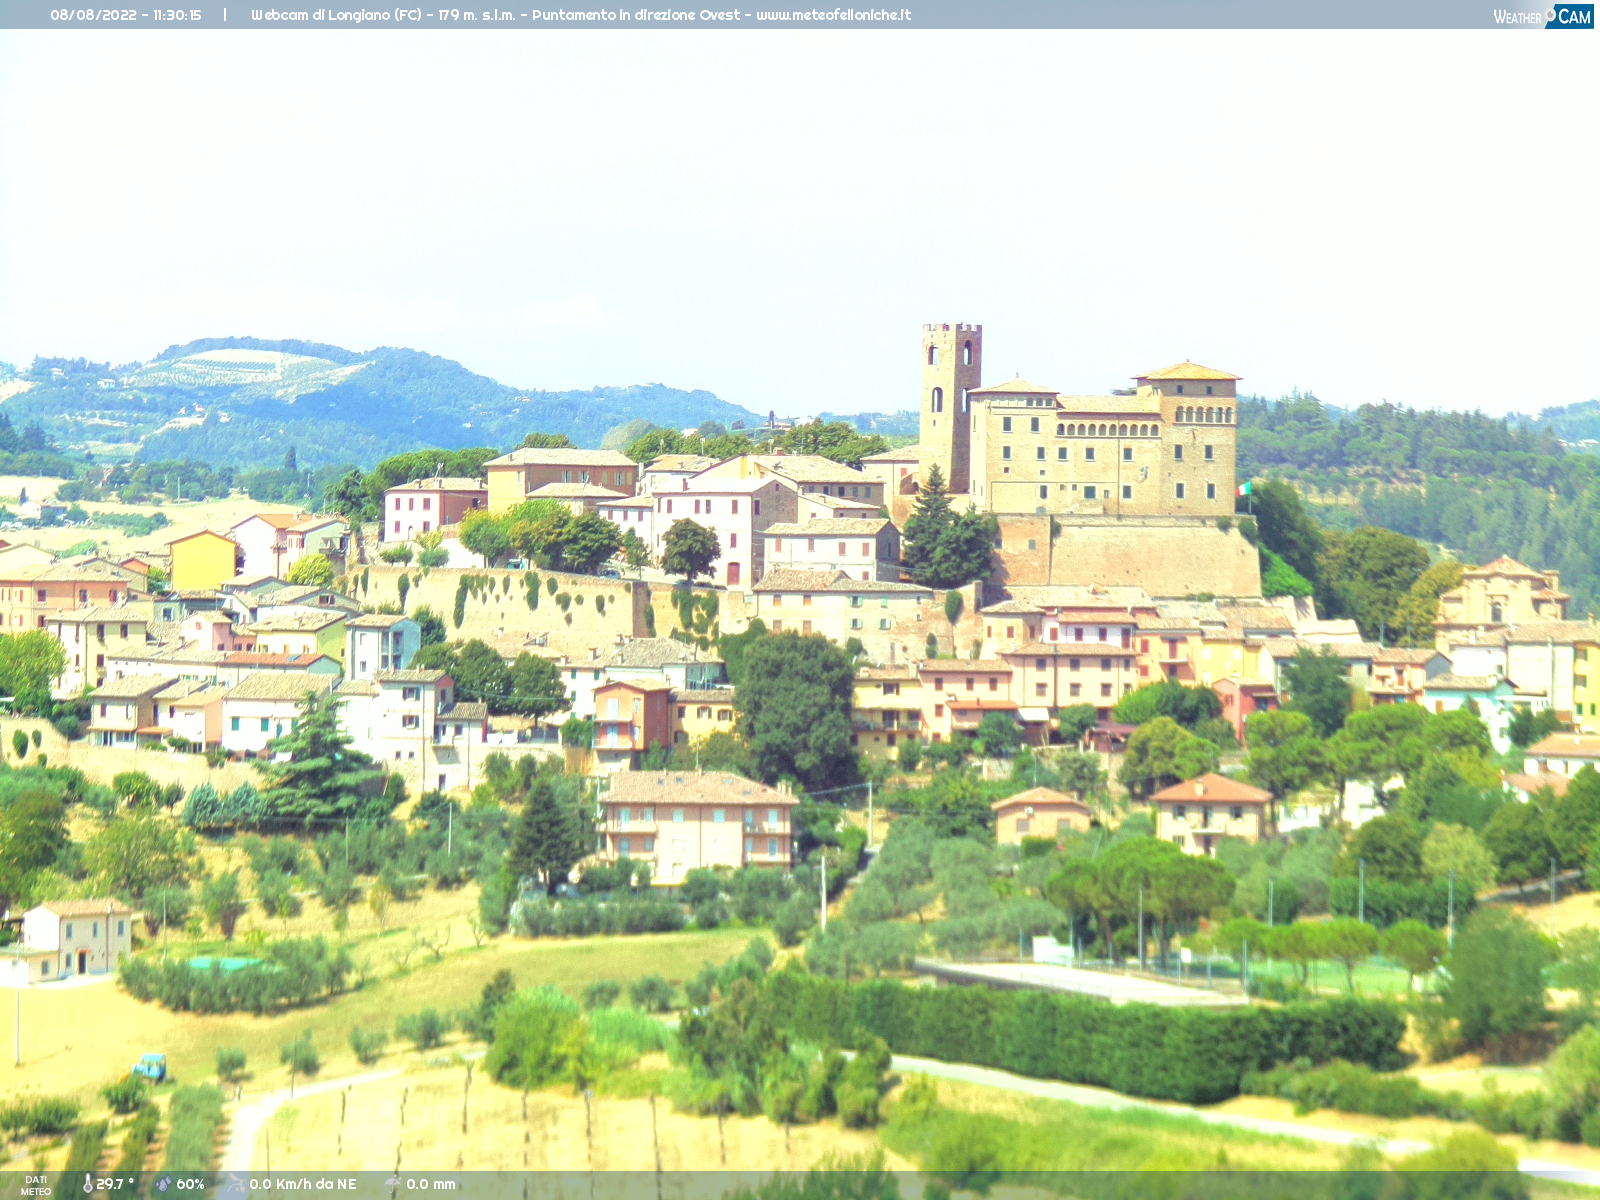 Webcam Felloniche fraz. Longiano